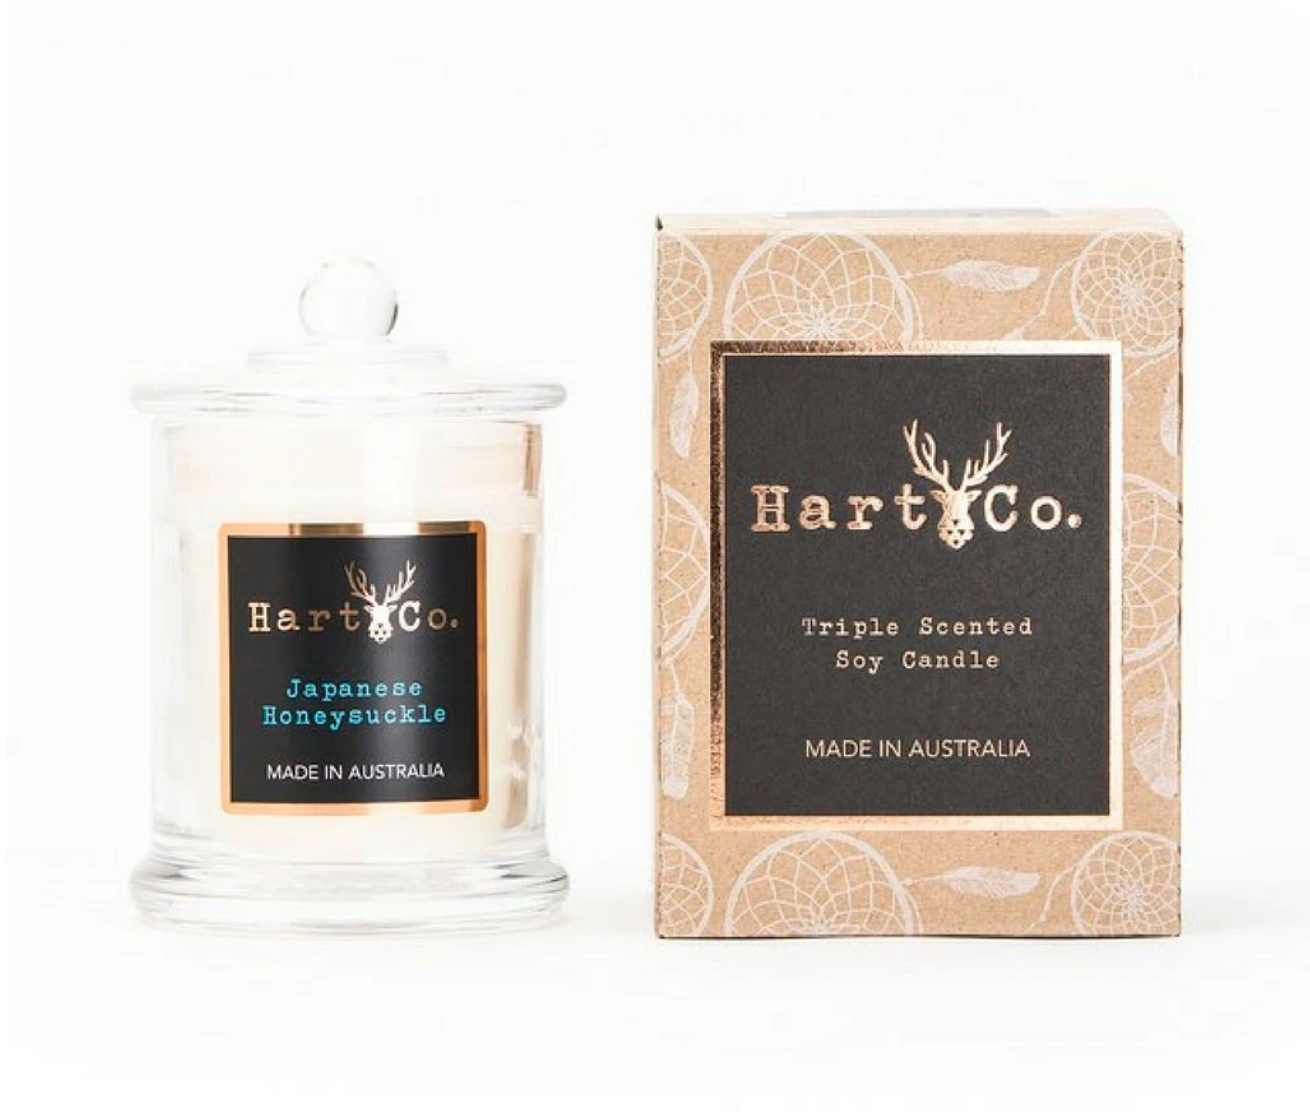 Japanese Honeysuckle 150g Candle